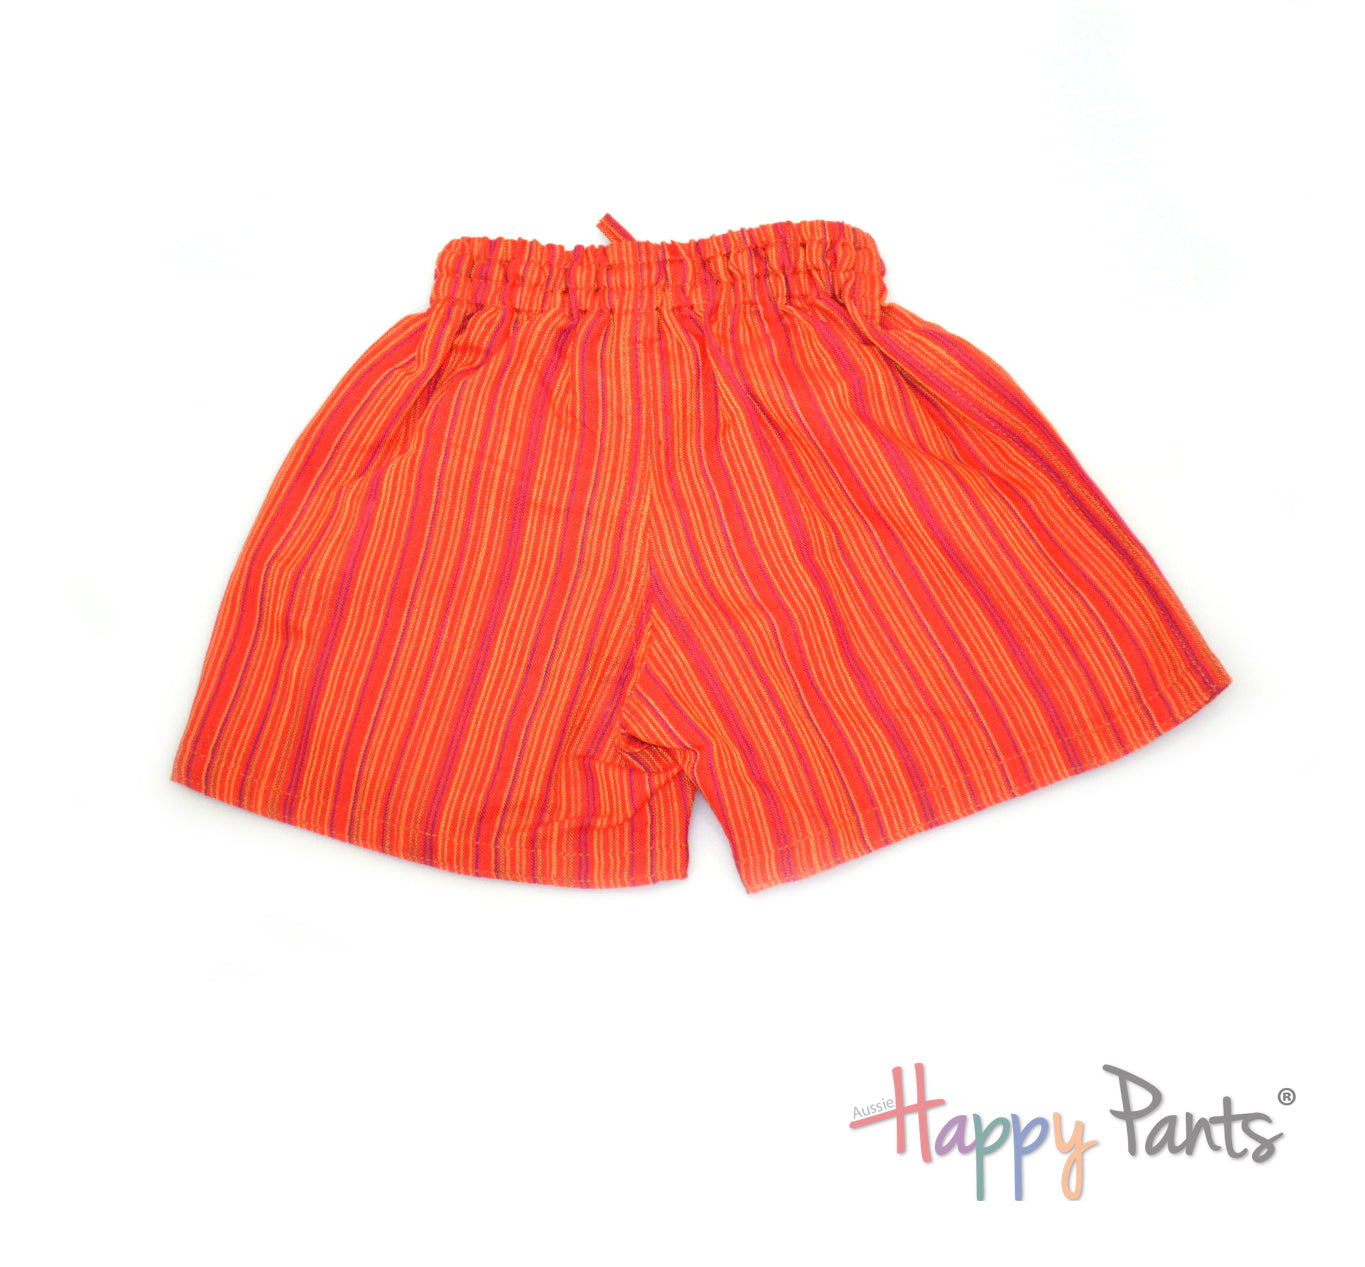 Apricot Jam Orange Kids Shorts